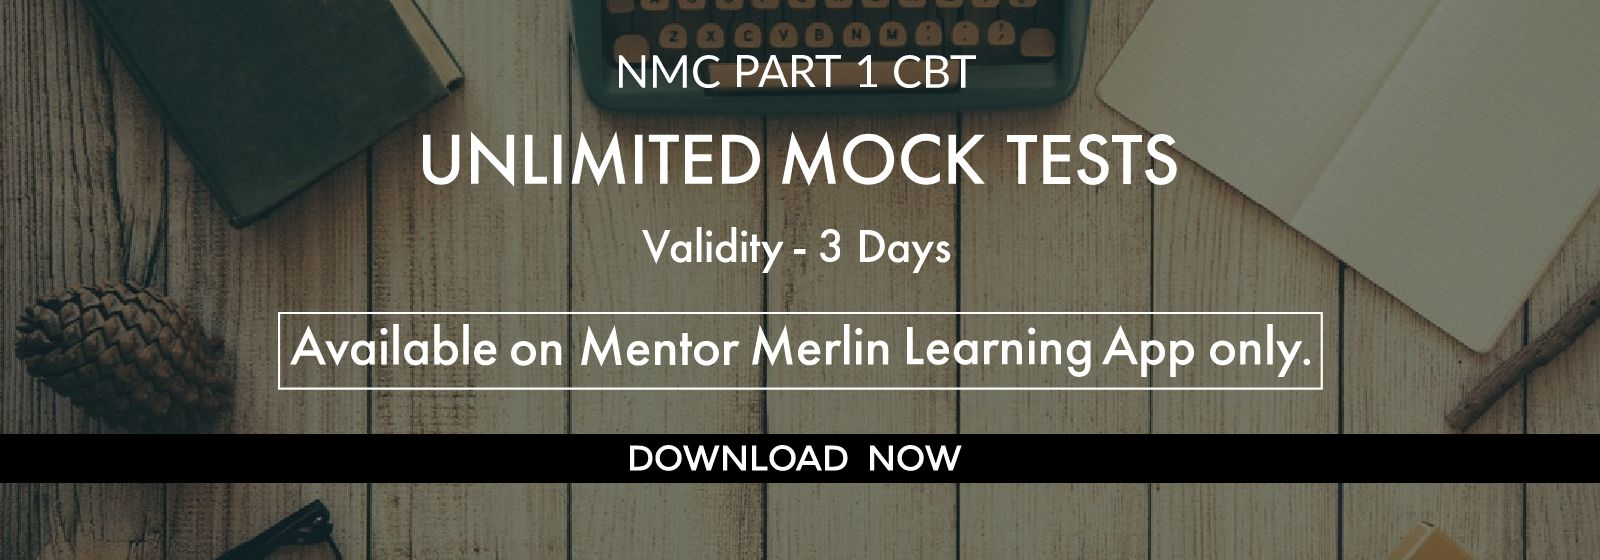 NMC CBT UK NURSE MOCK TEST for 3 Days